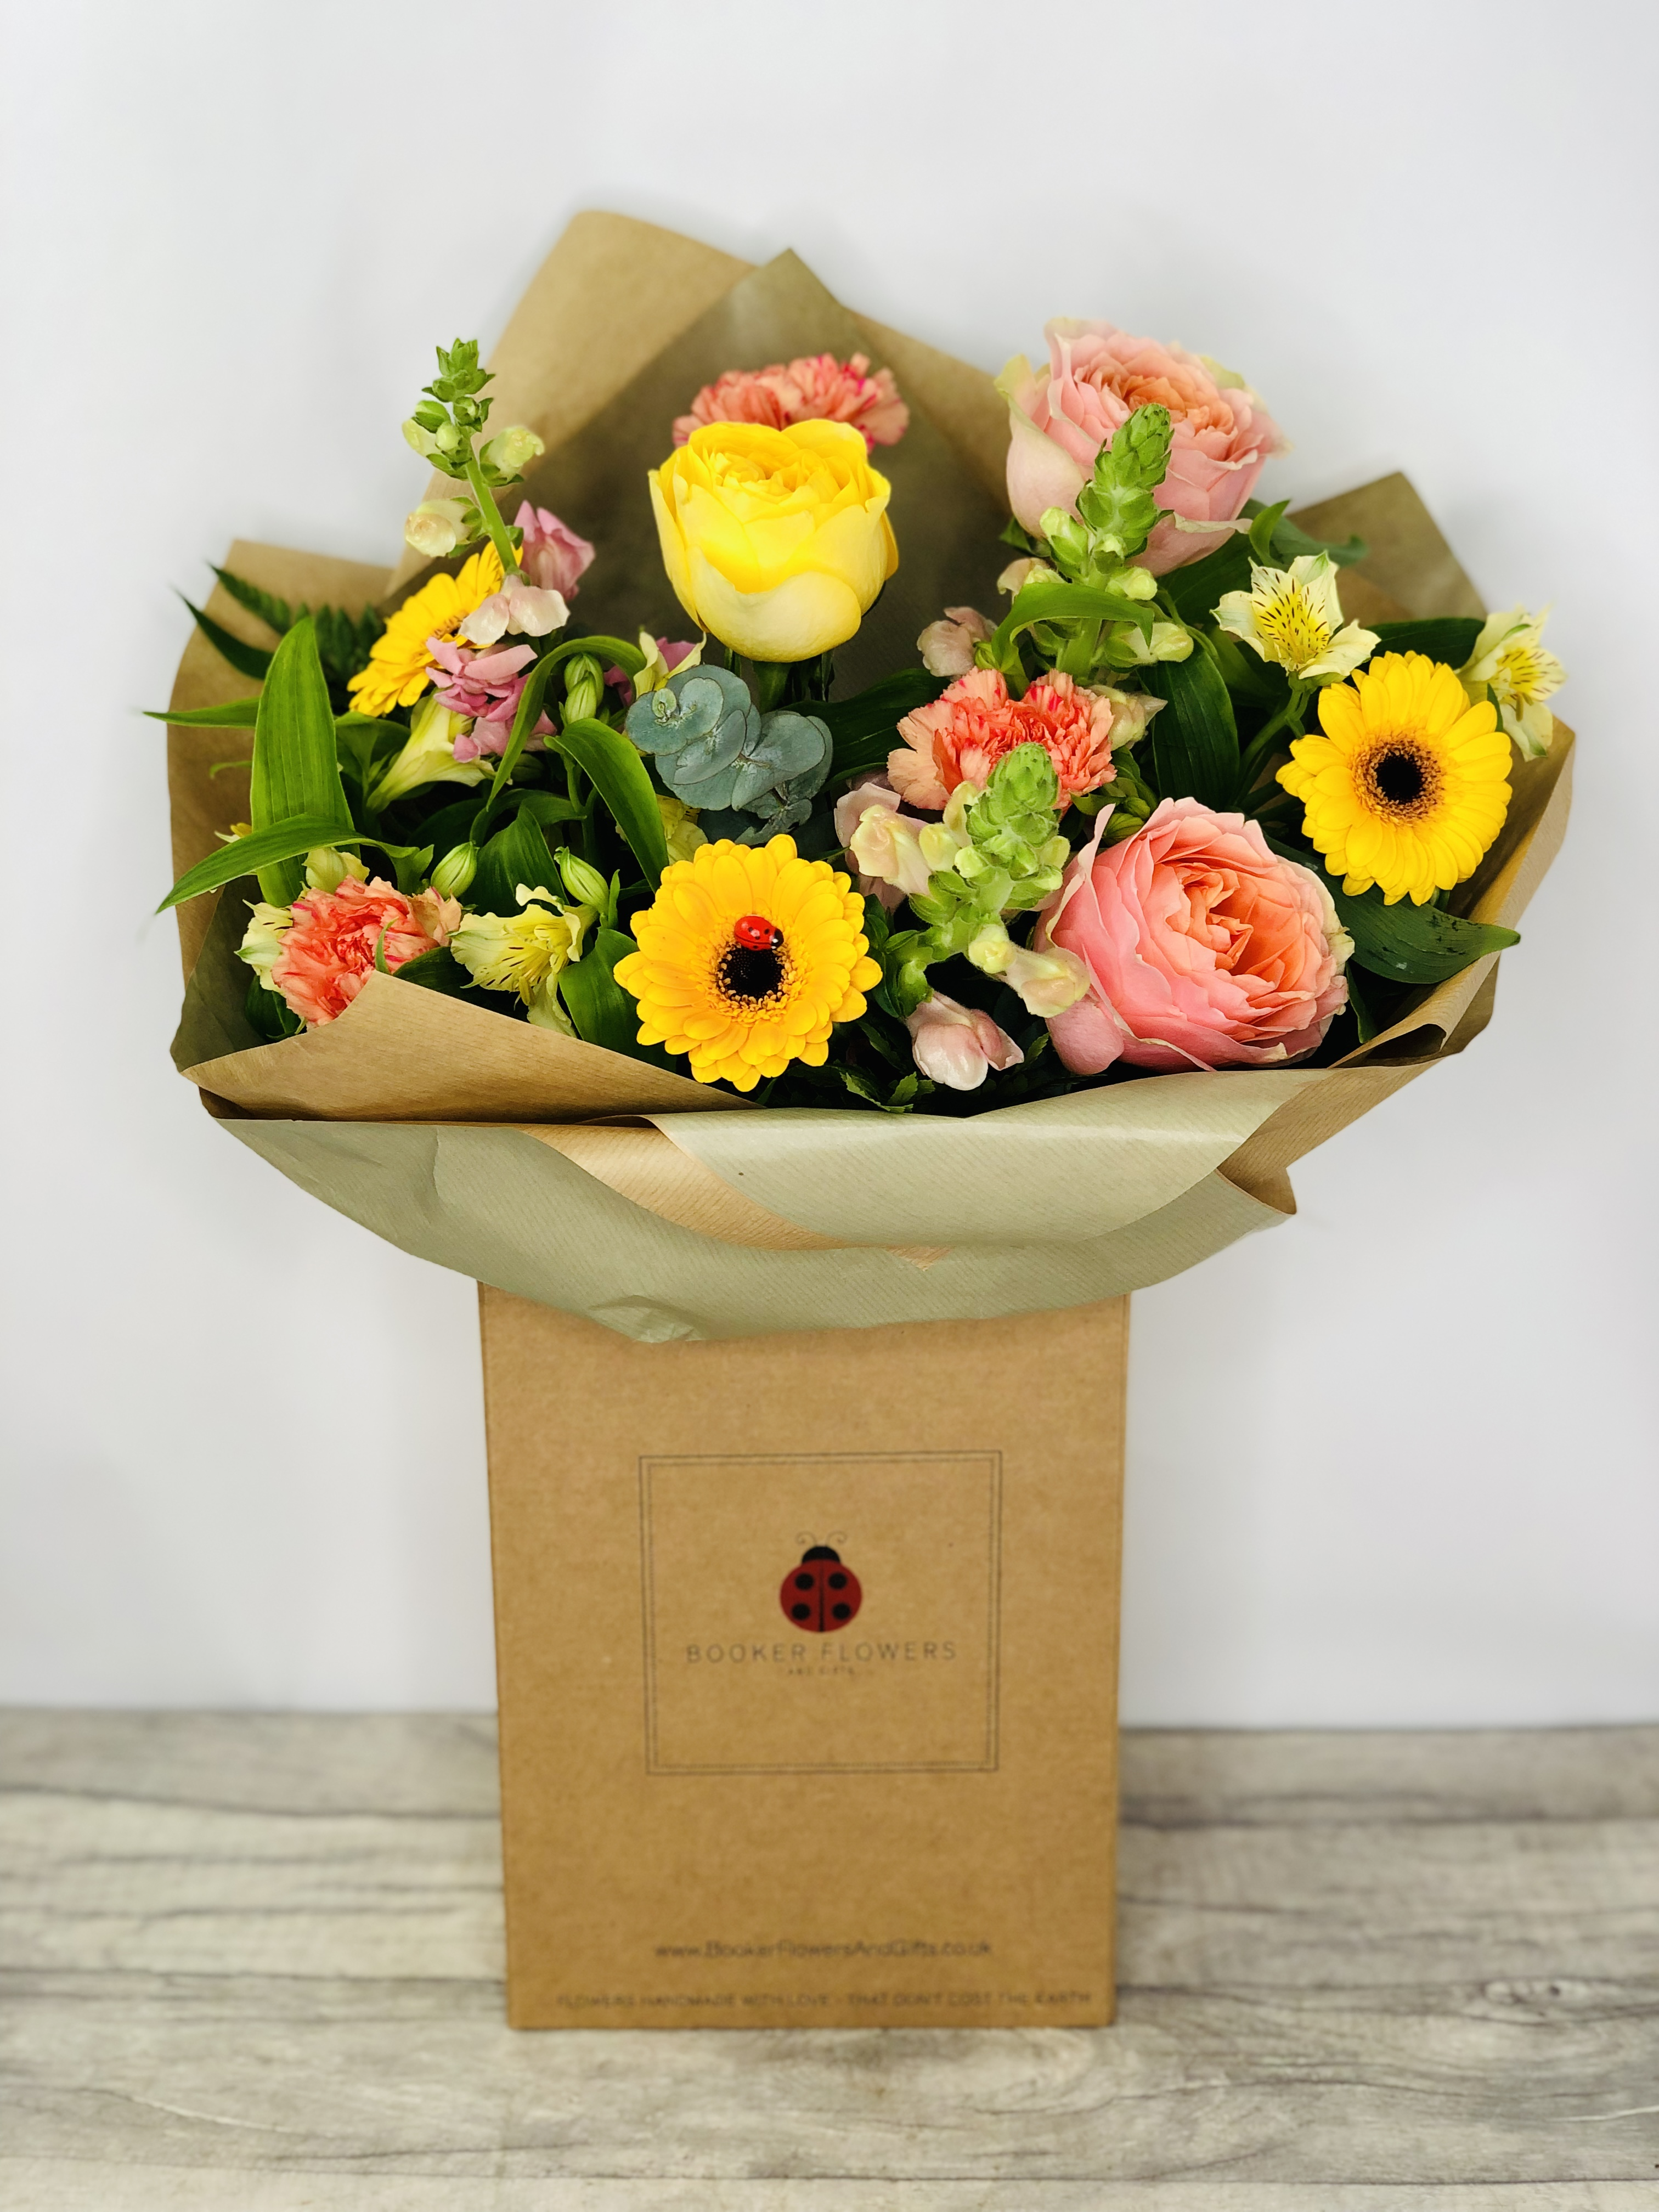 Booker Flowers and Gifts is the website of the retail shop Booker Flowers and Gifts.  Through this website you can order and send flowers in and around the Liverpool area.  You can also send nationally.  